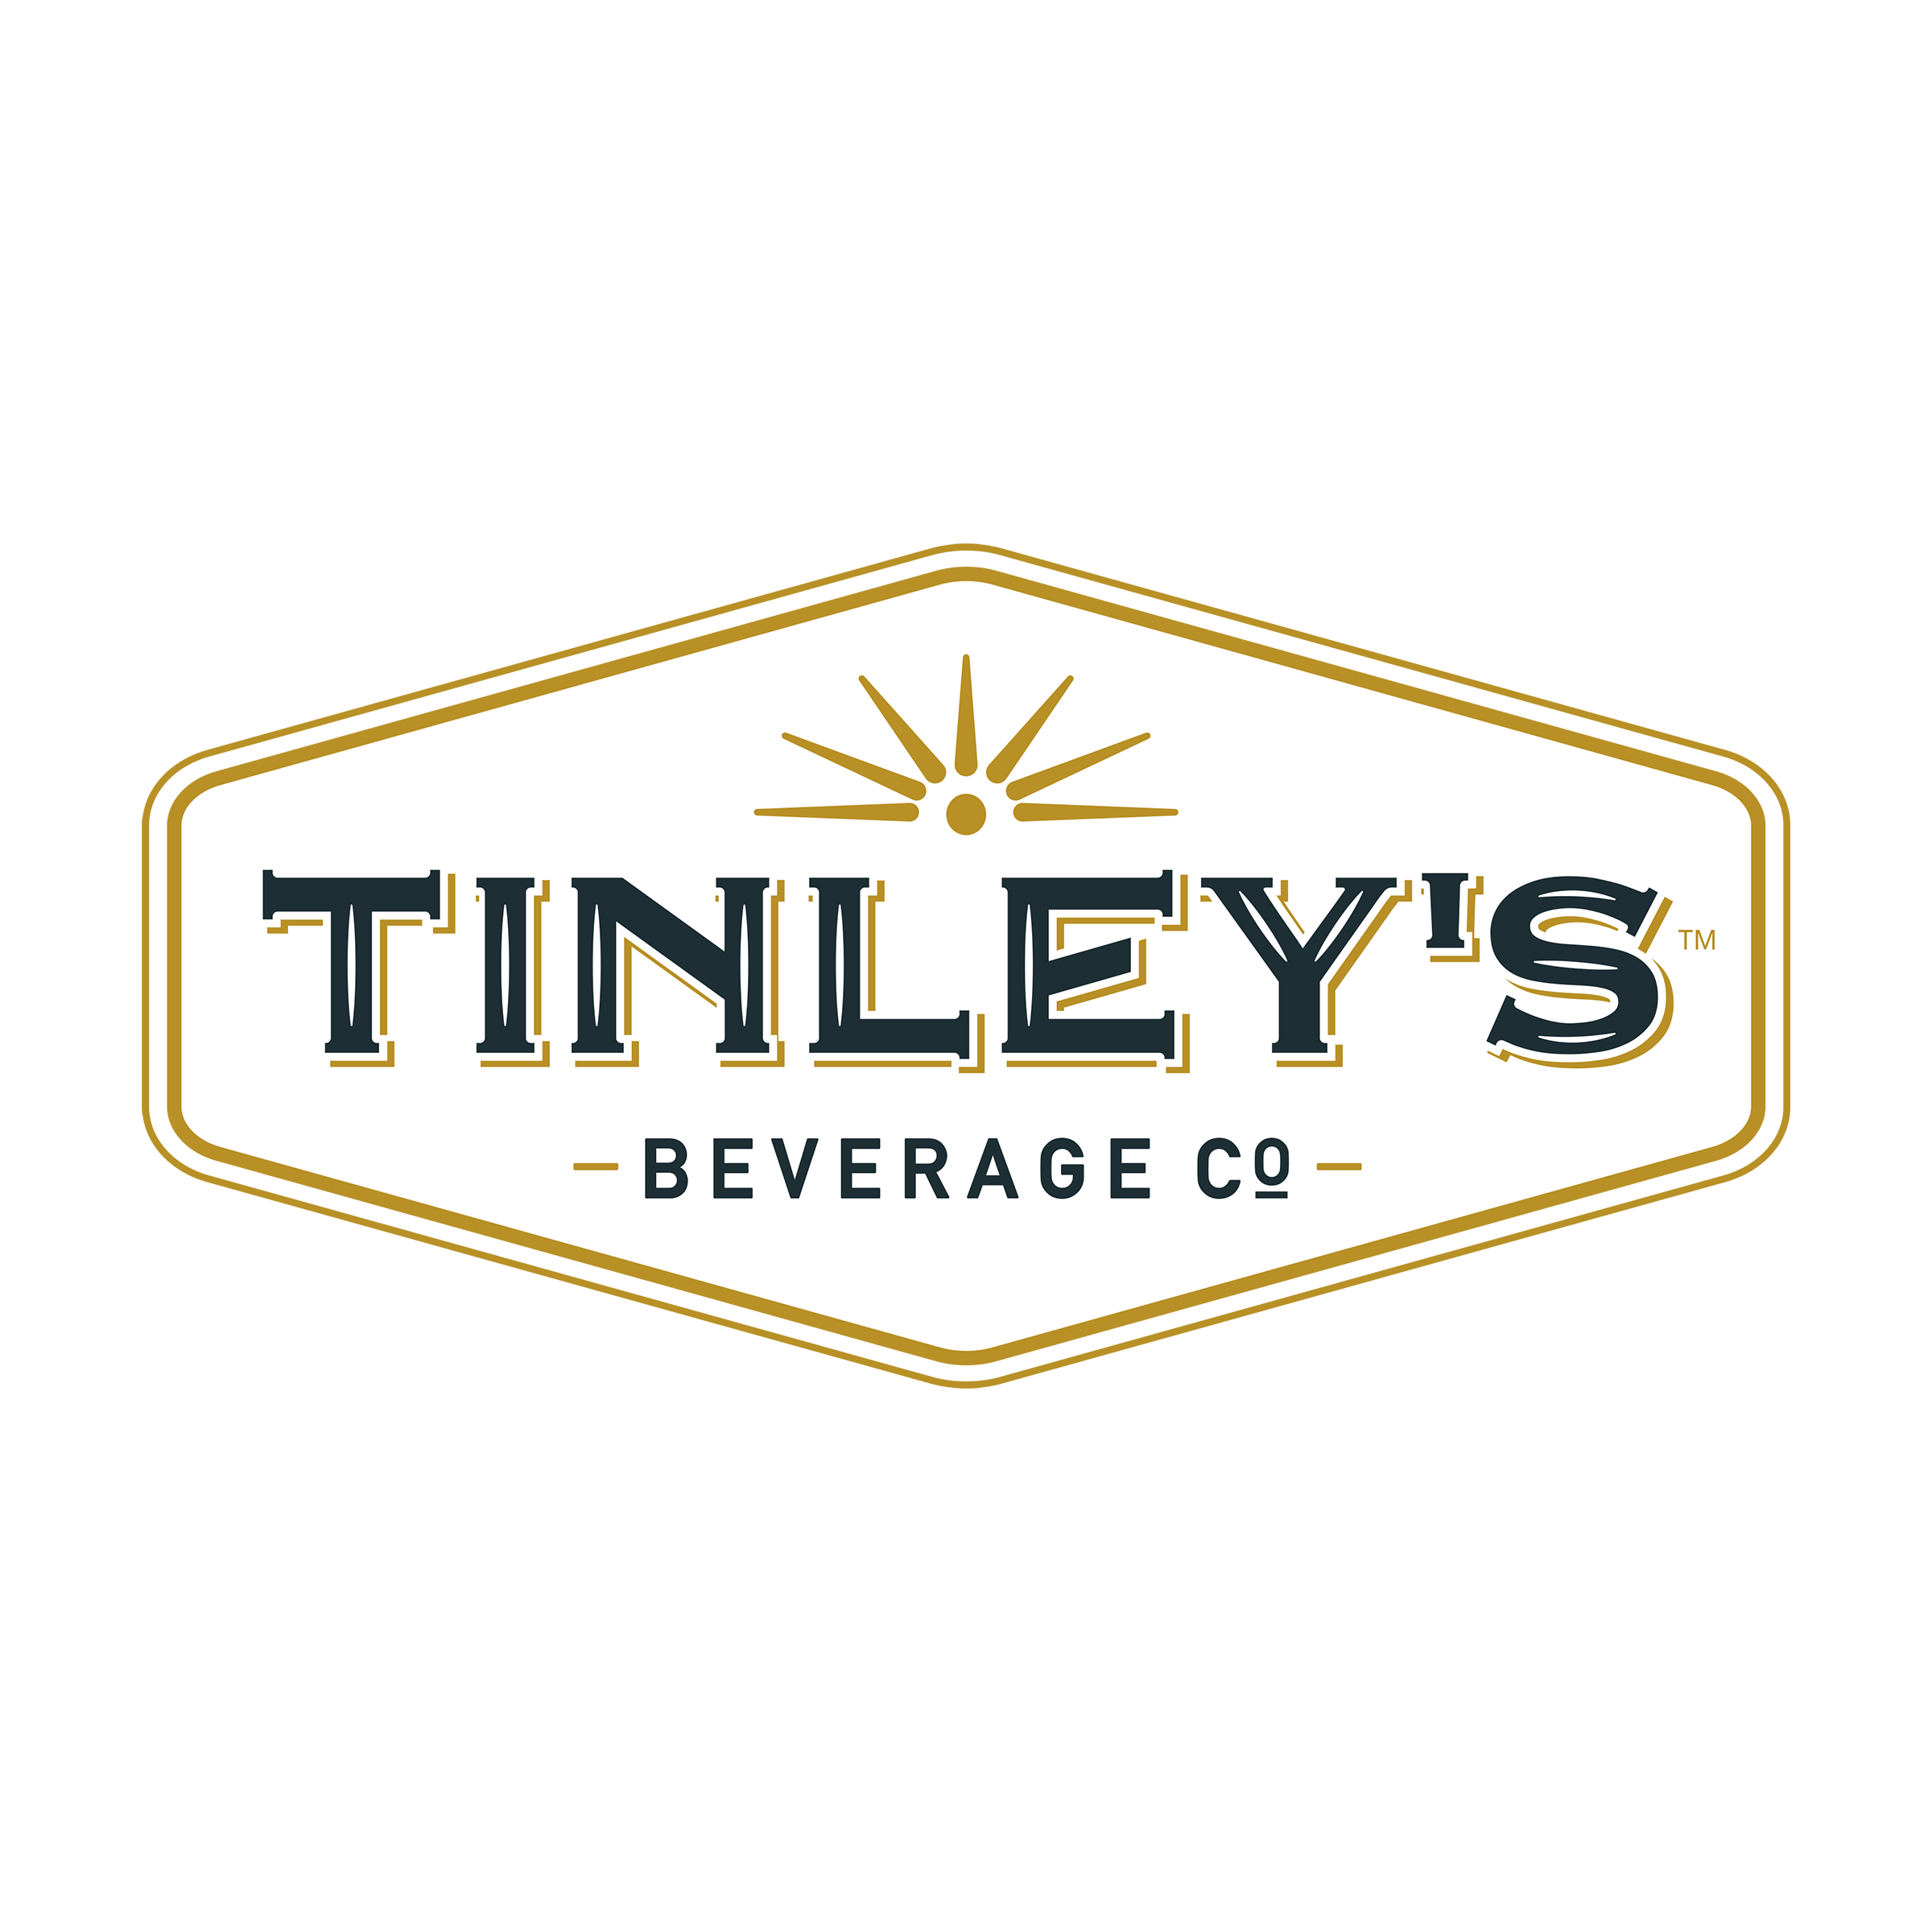 Tinley's Ships Inaugural Batches from Long Beach and Provides Corporate Update